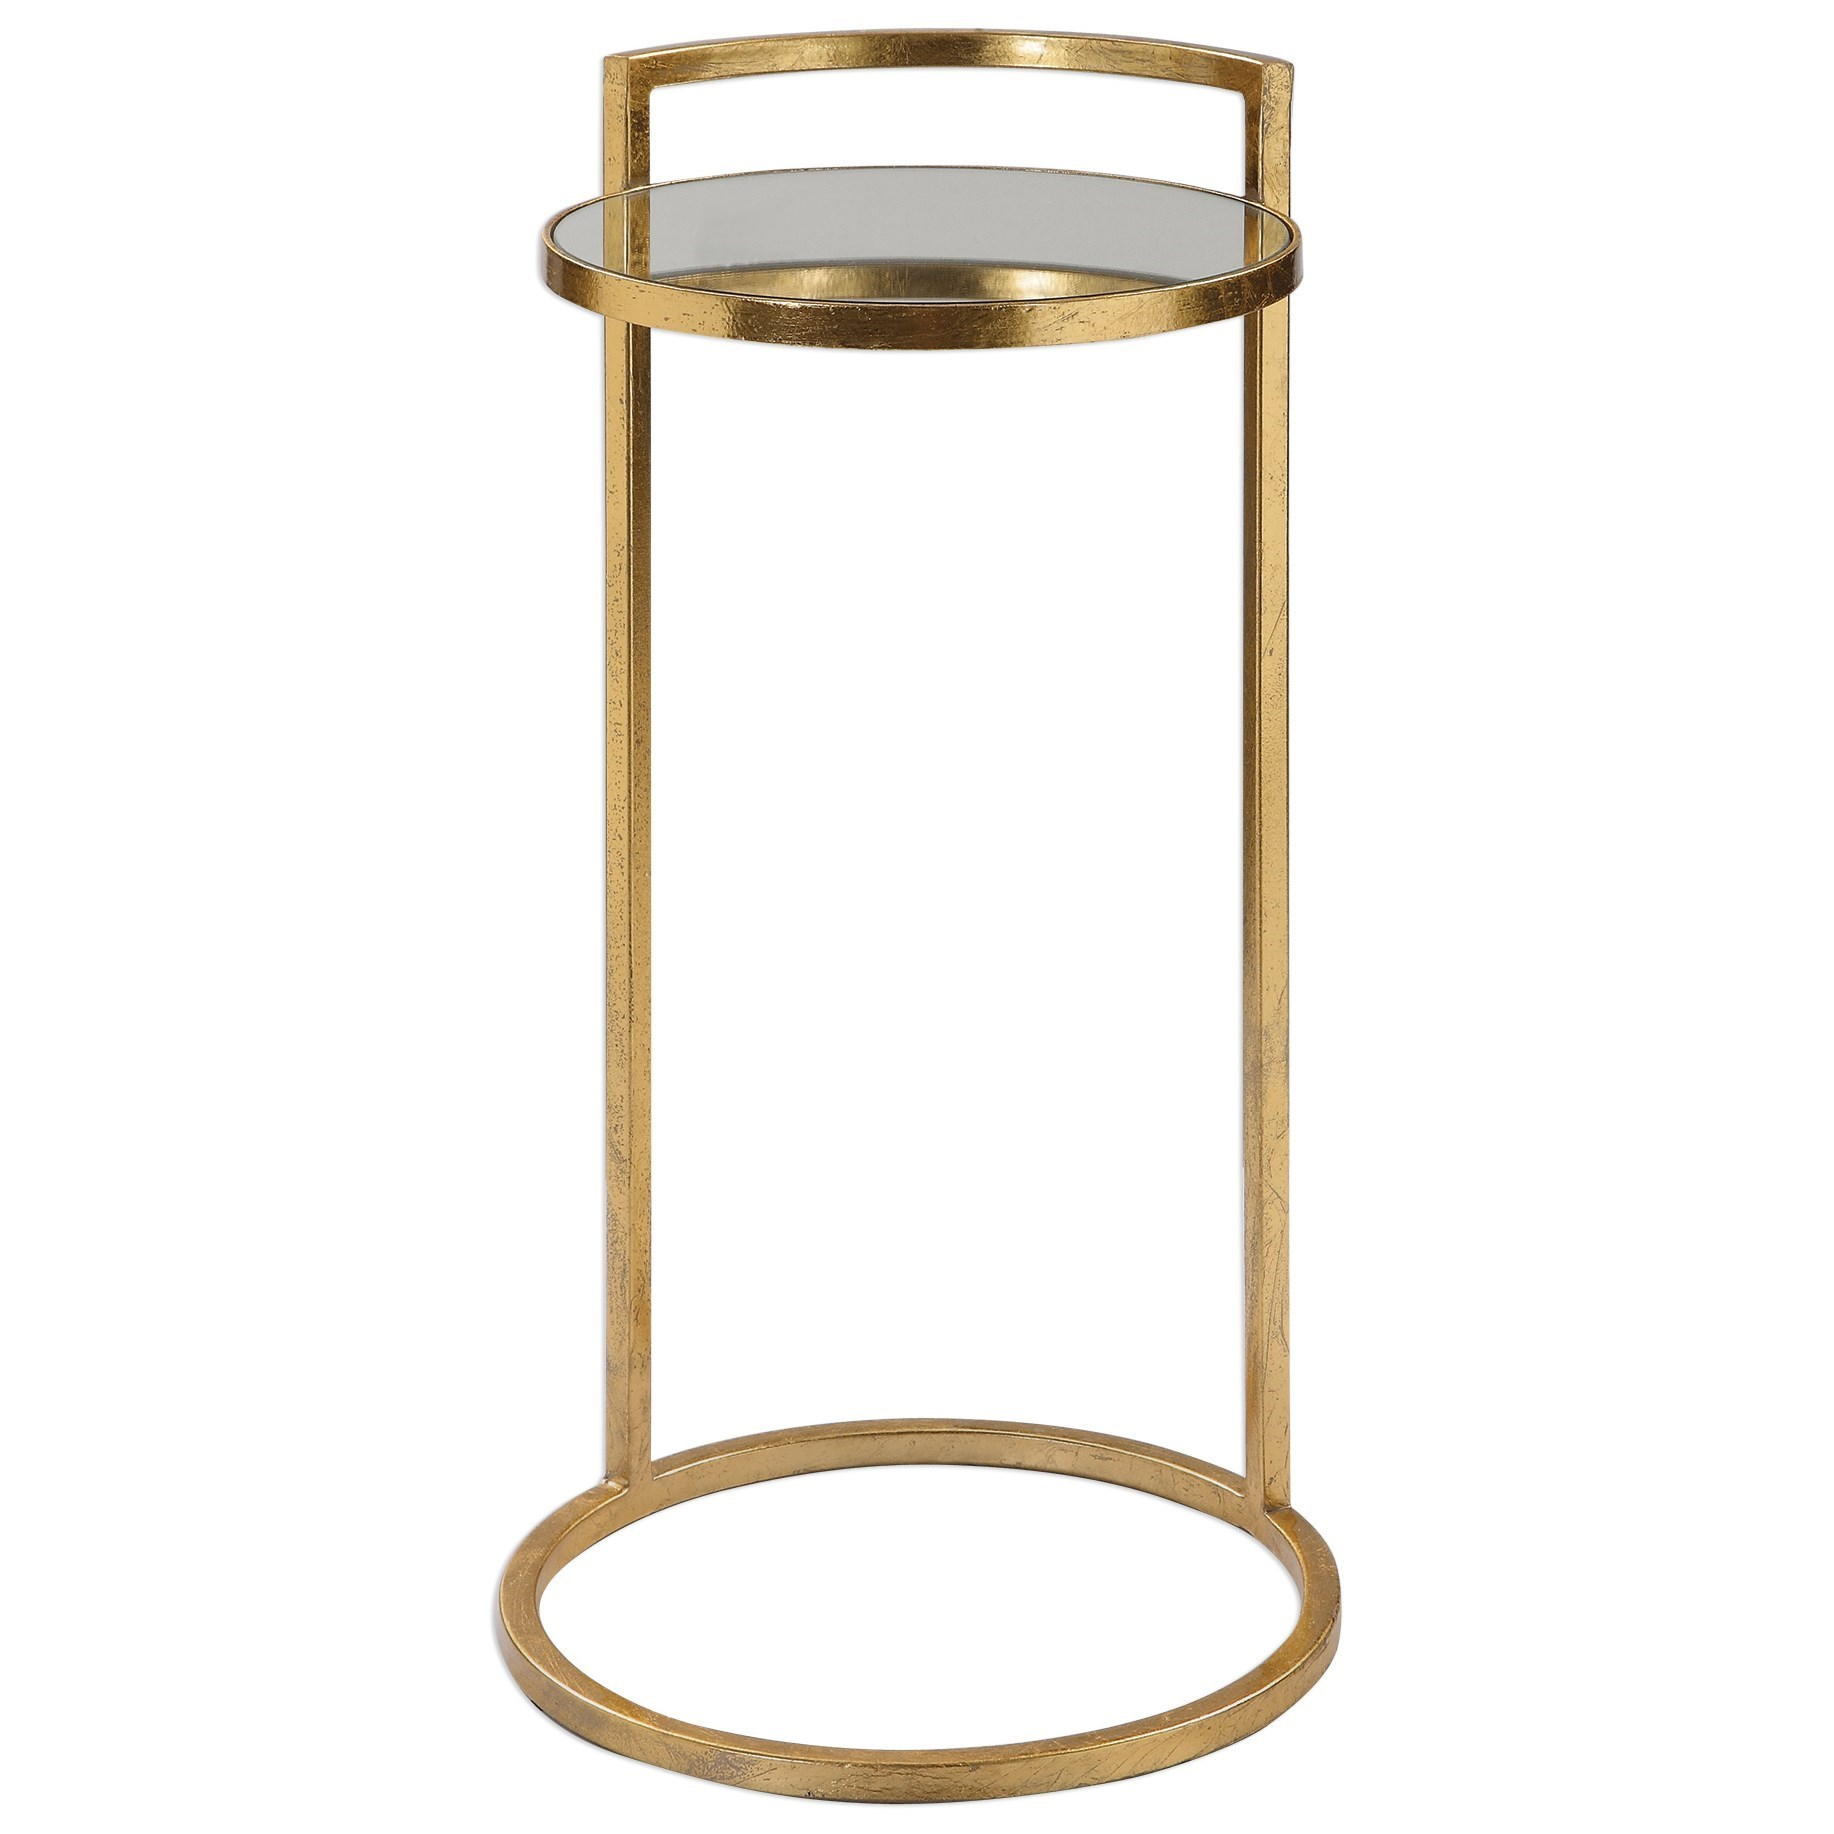 Accent Furniture - Occasional Tables Cailin Gold Accent Table by Uttermost at Factory Direct Furniture